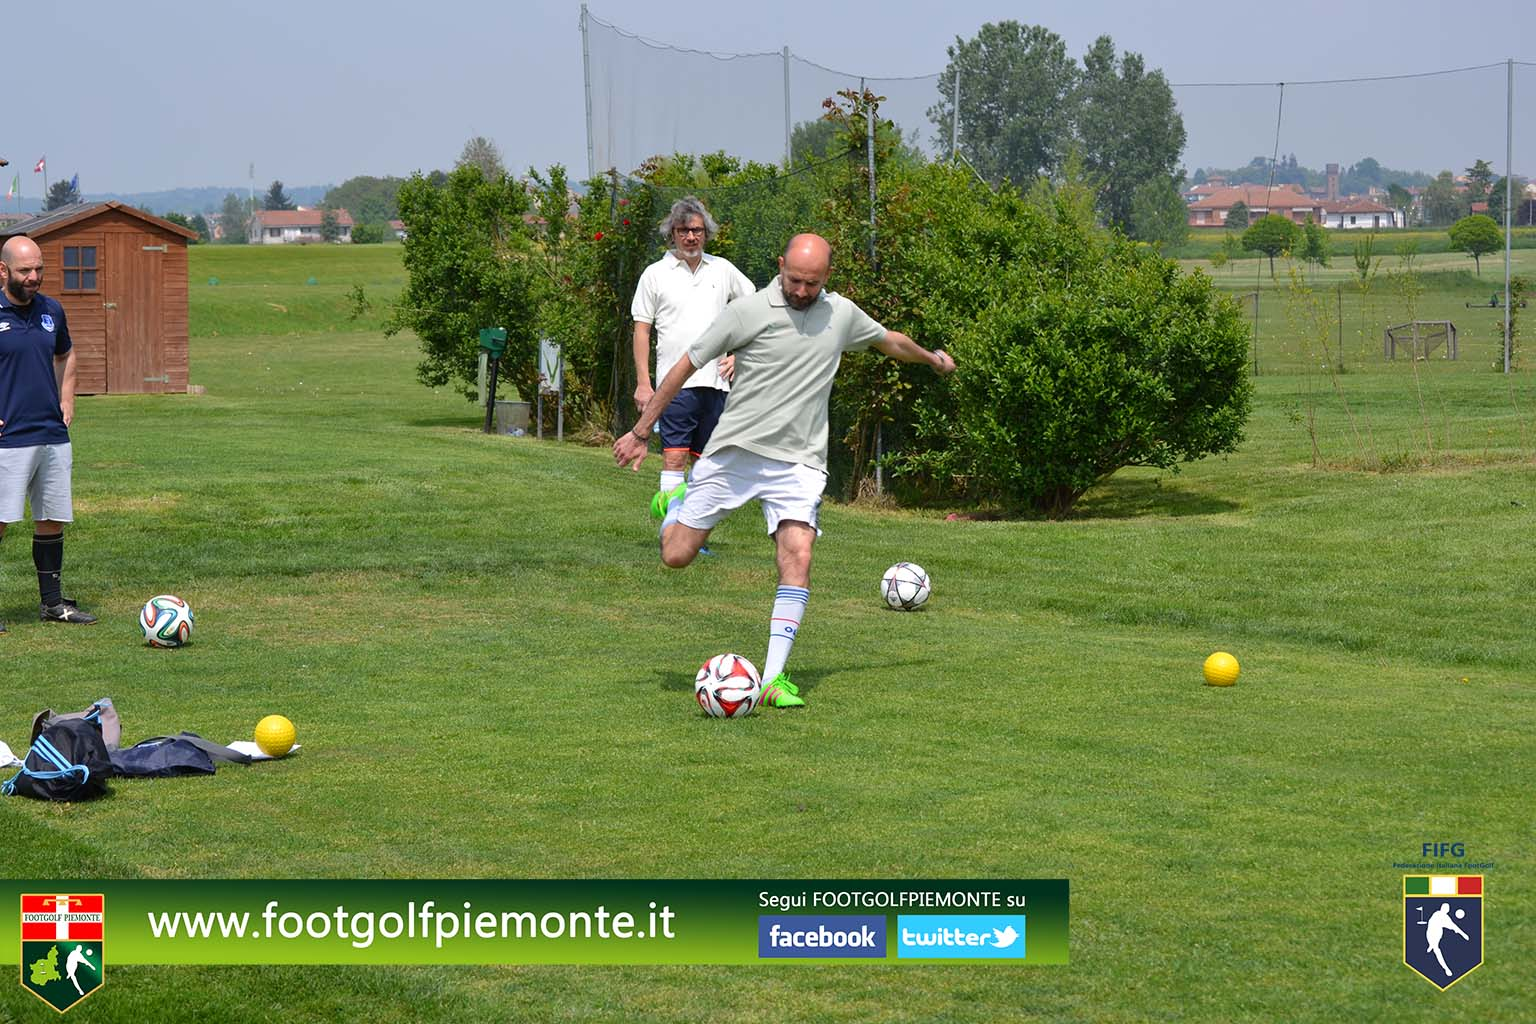 FOTO 9 Regions' Cup Footgolf Piemonte 2016 Golf Città di Asti (At) 30apr16-34